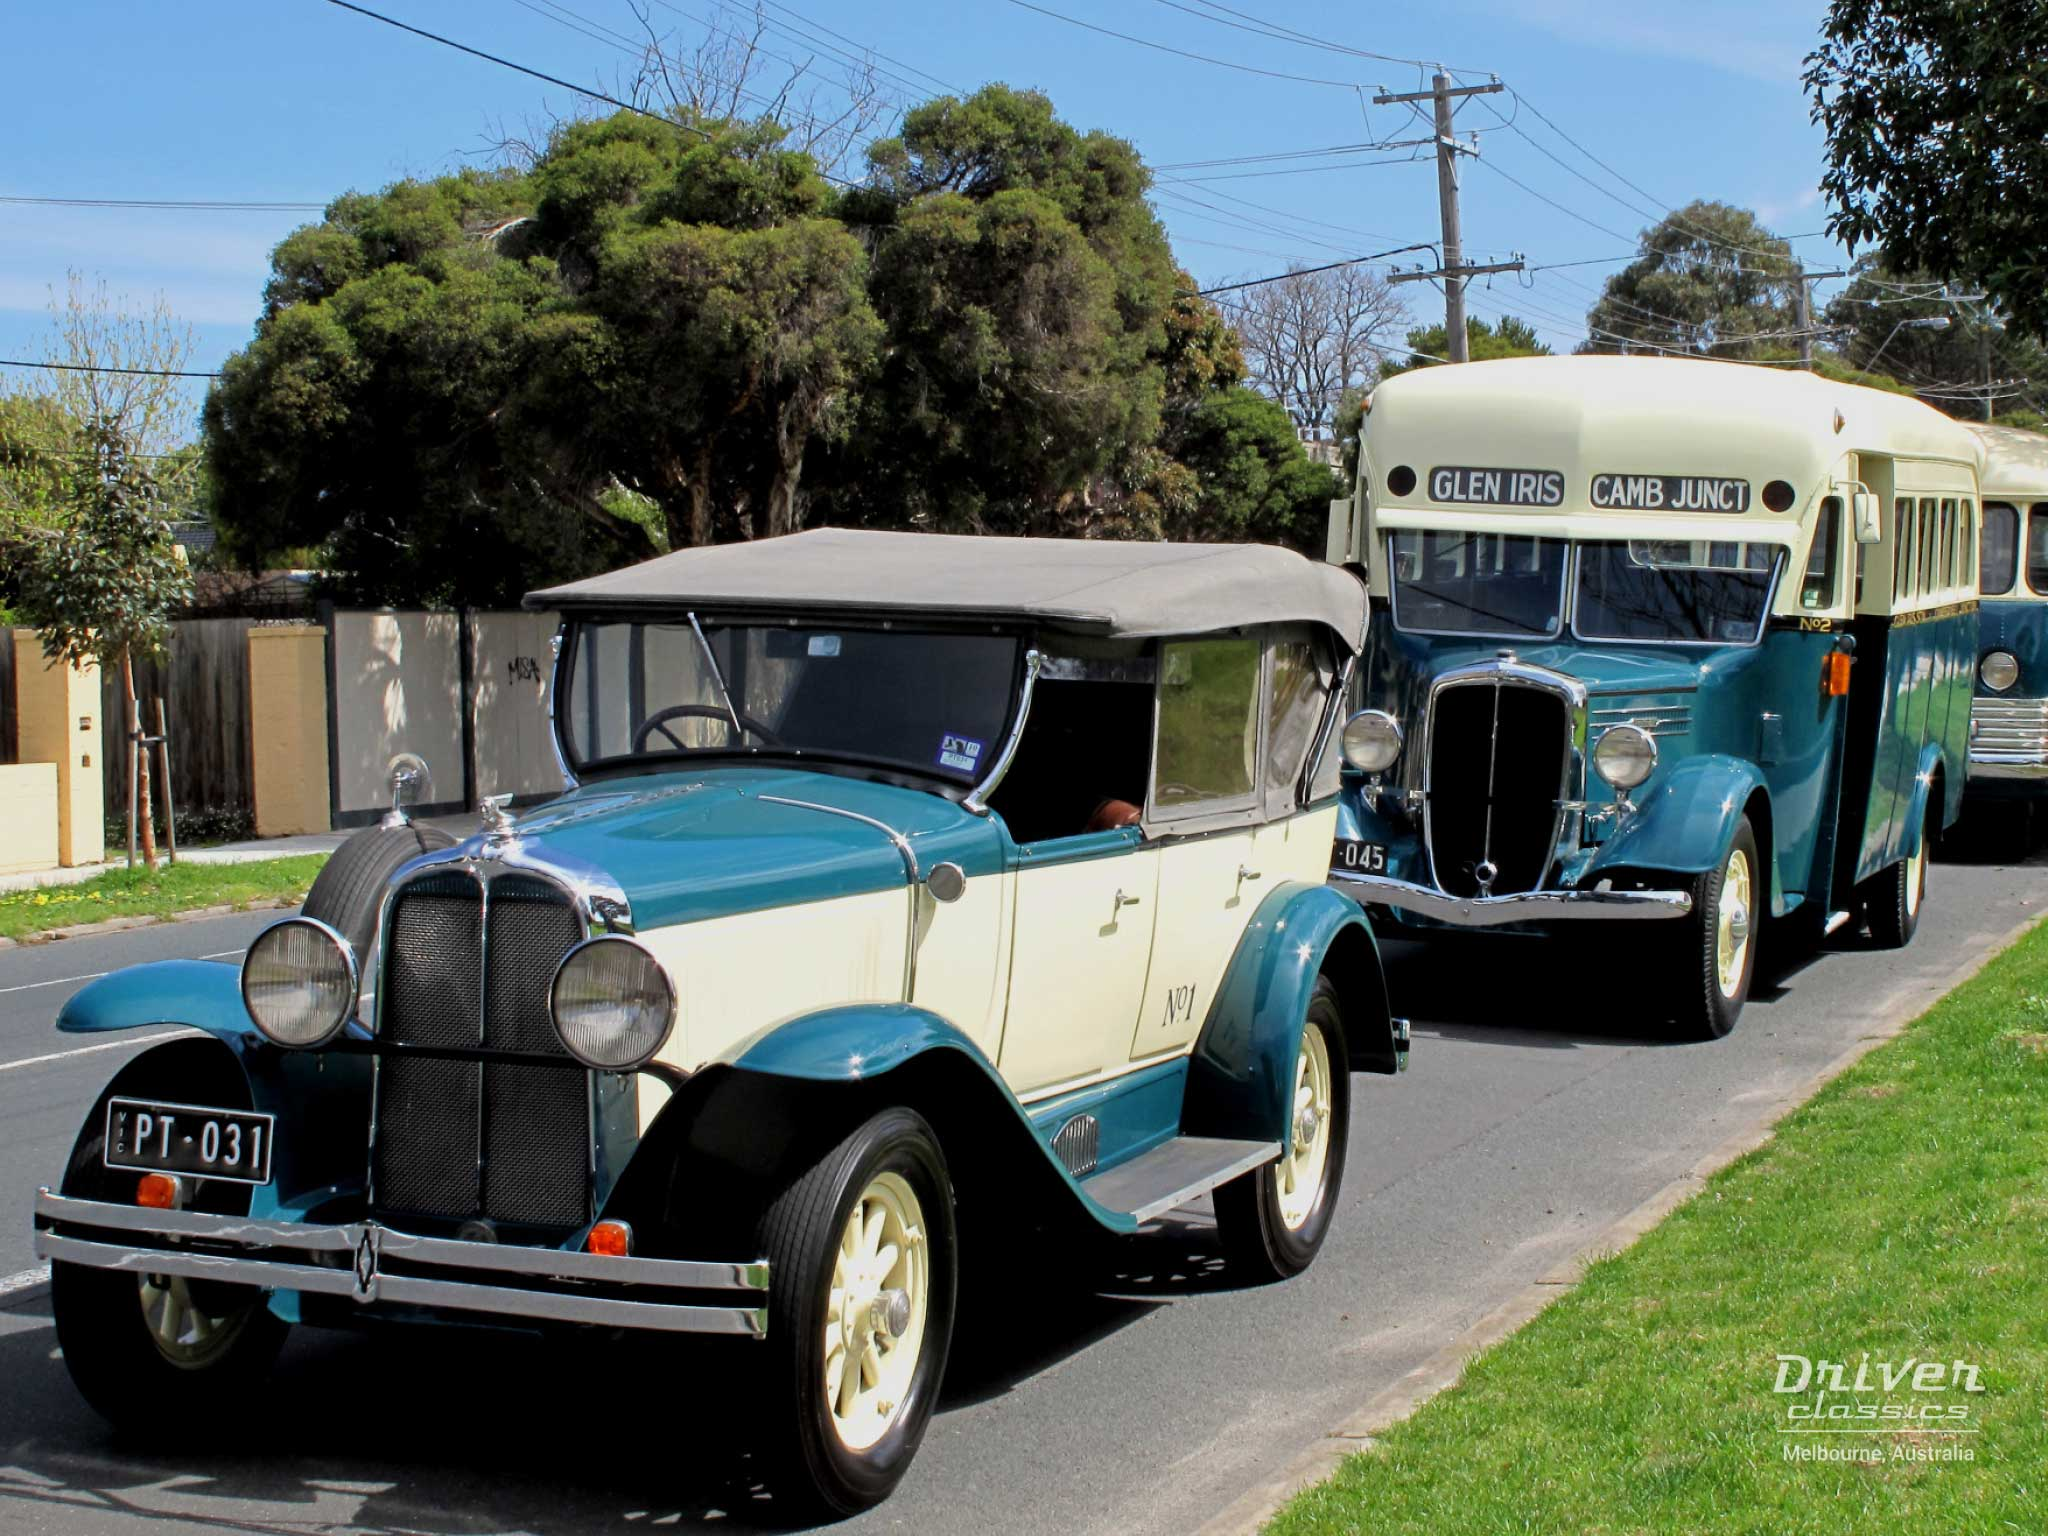 1930 Pontiac in front of 1936 Federal Bus and 1947 Bedford OB